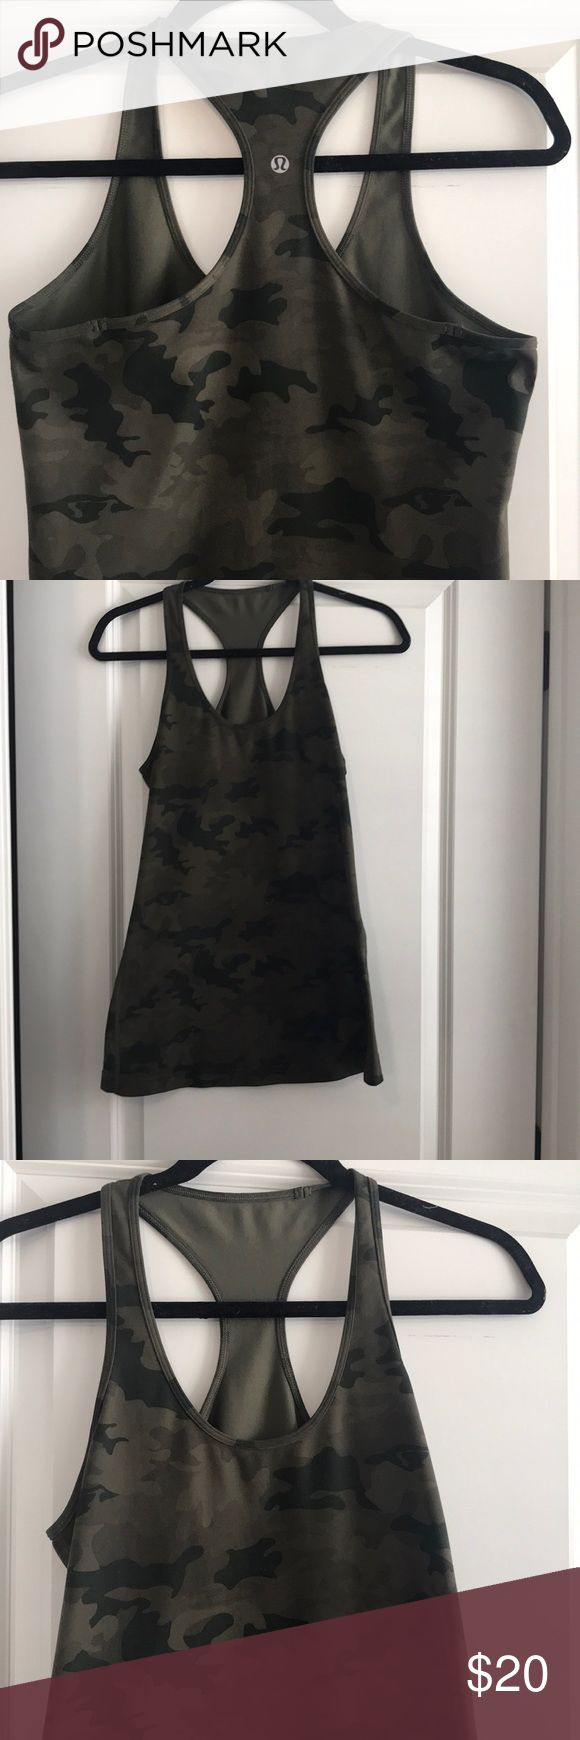 Lululemon long camo tank top! Lululemon dark green camo tank! I took the tag off but I think it's either a size 8 or 10. It is a longer tank and almost in perfect condition. There is one tiny white dot on the front that I never even noticed until I was taking the pictures! lululemon athletica Tops Tank Tops